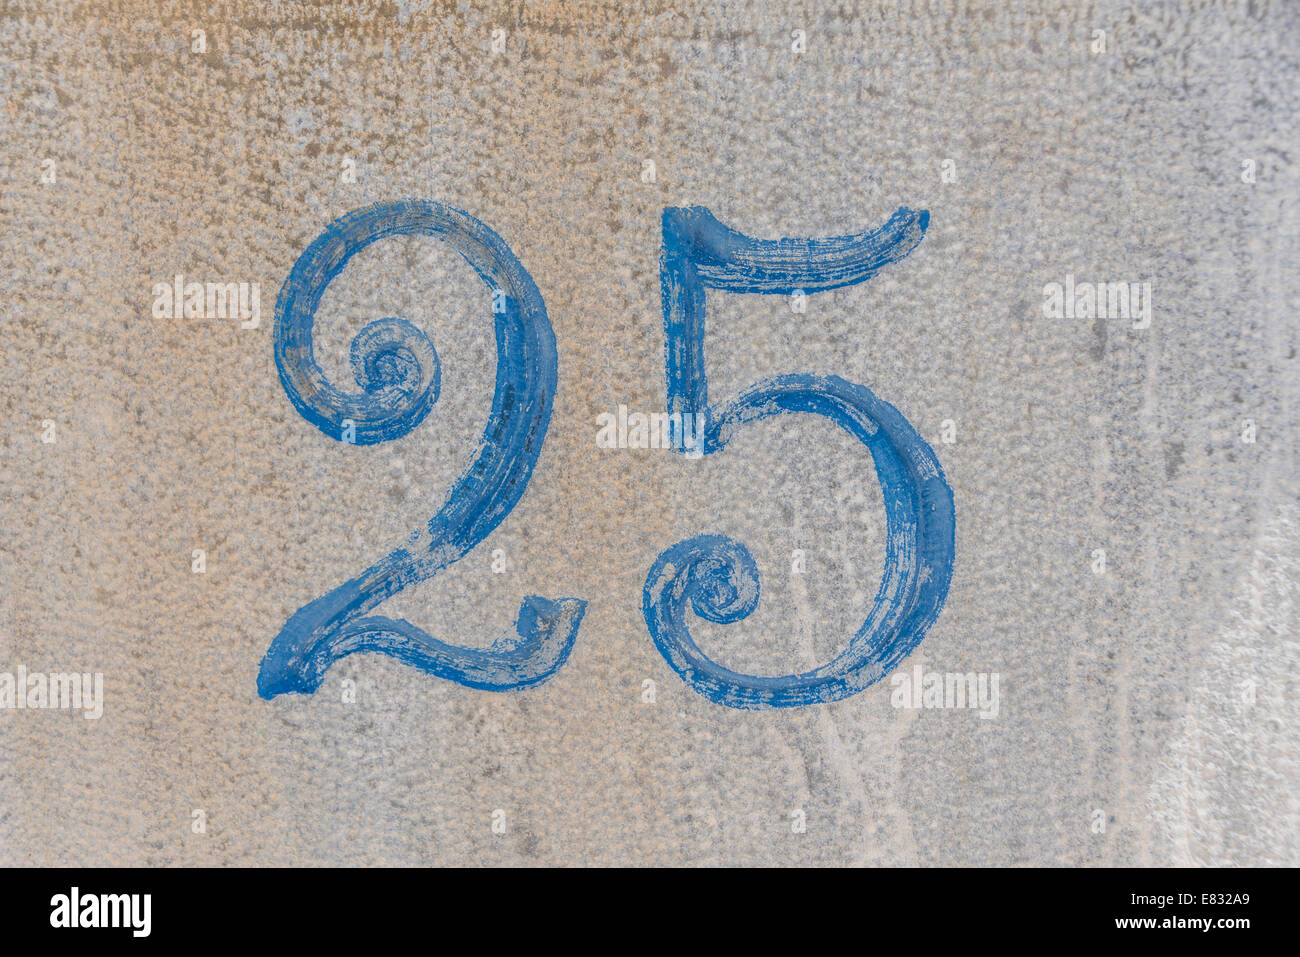 Number 25 painted on stone in an ornate blue font - Stock Image